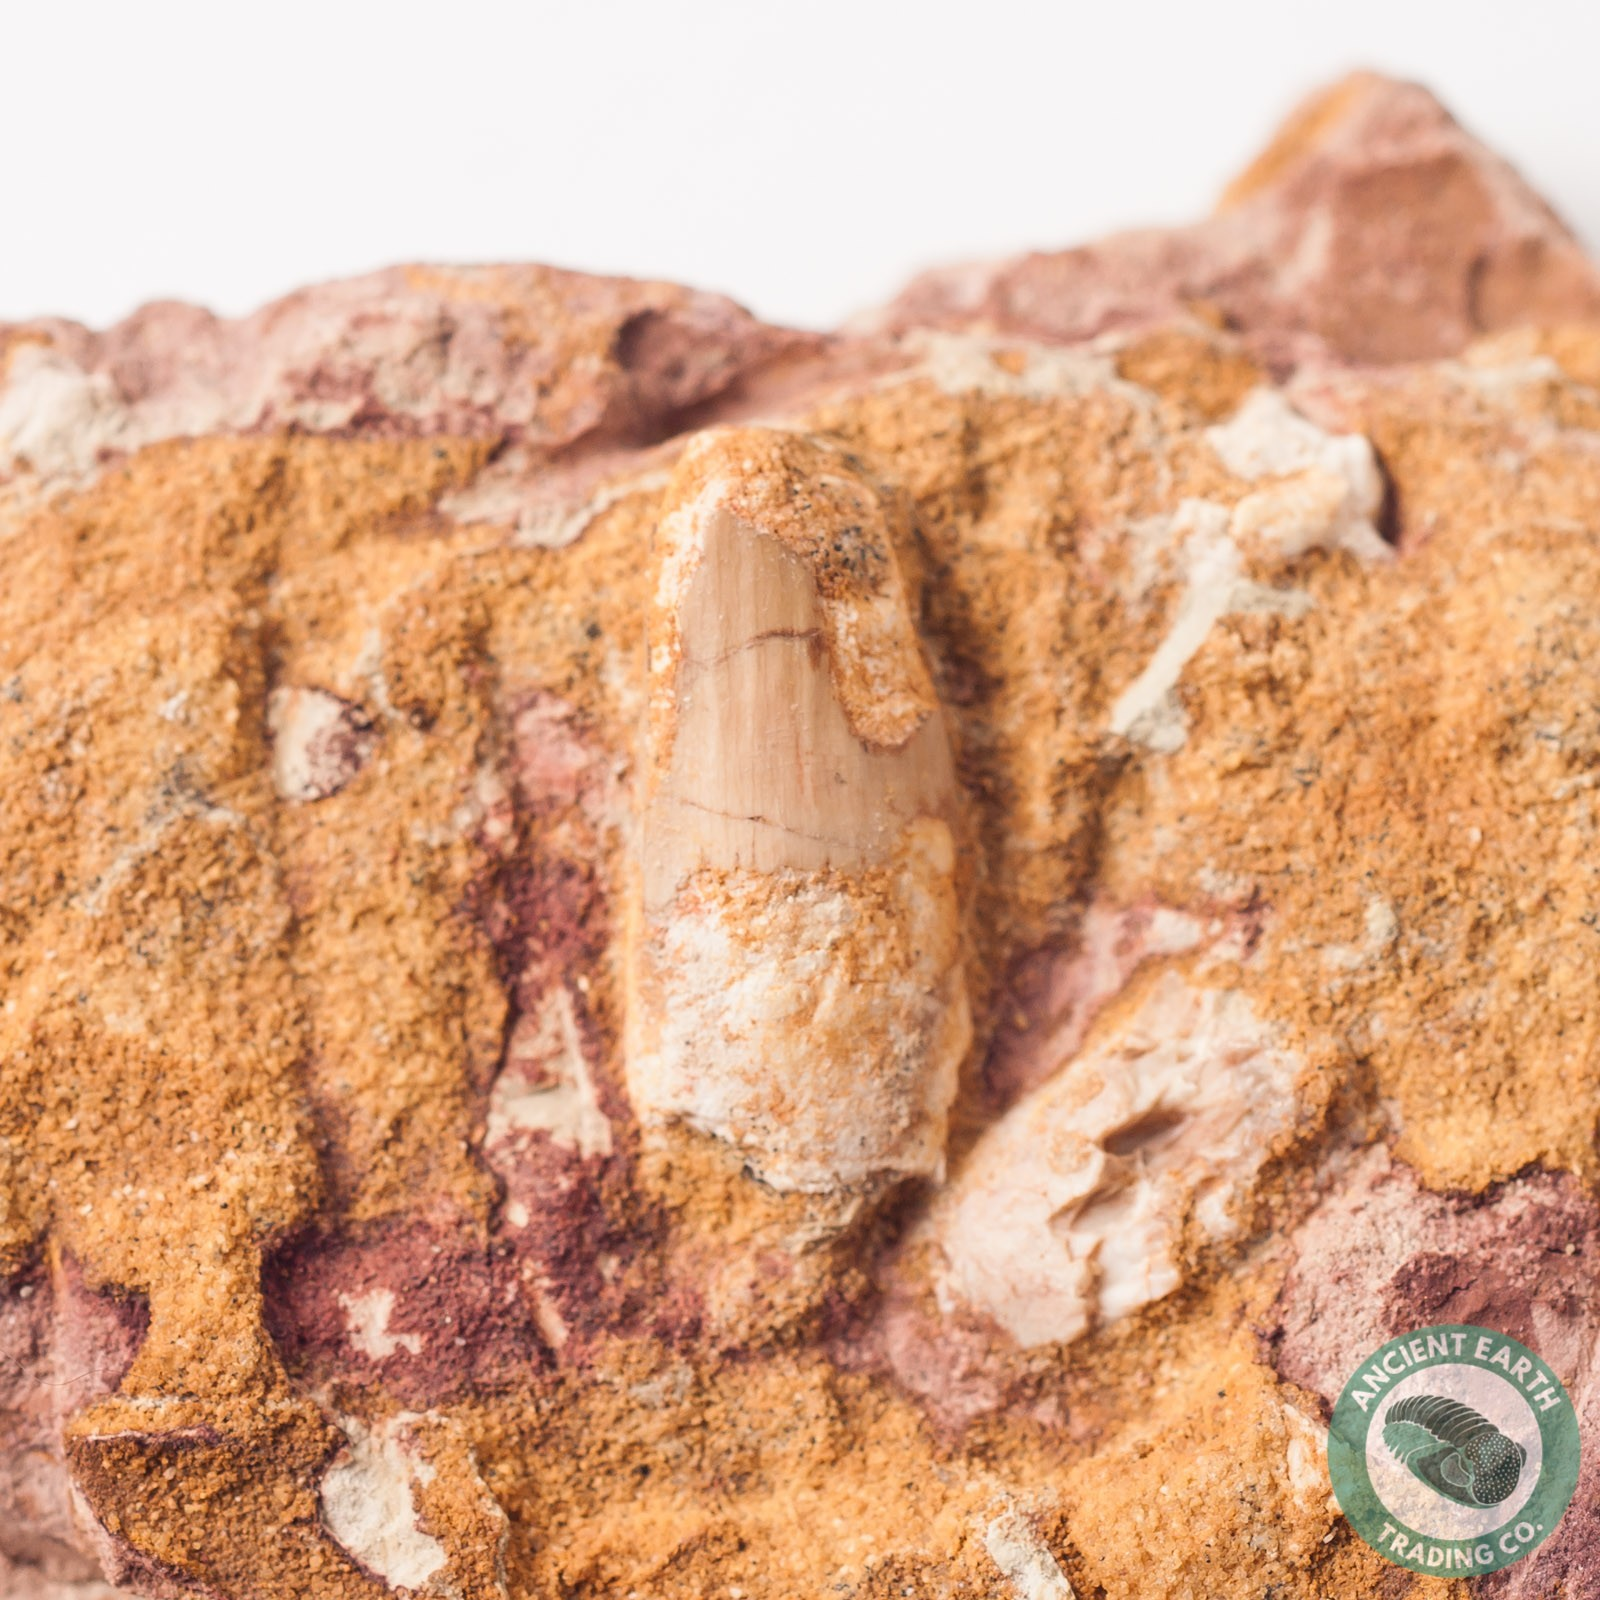 .83 in Spinosaurus Tooth in Matrix - Morocco